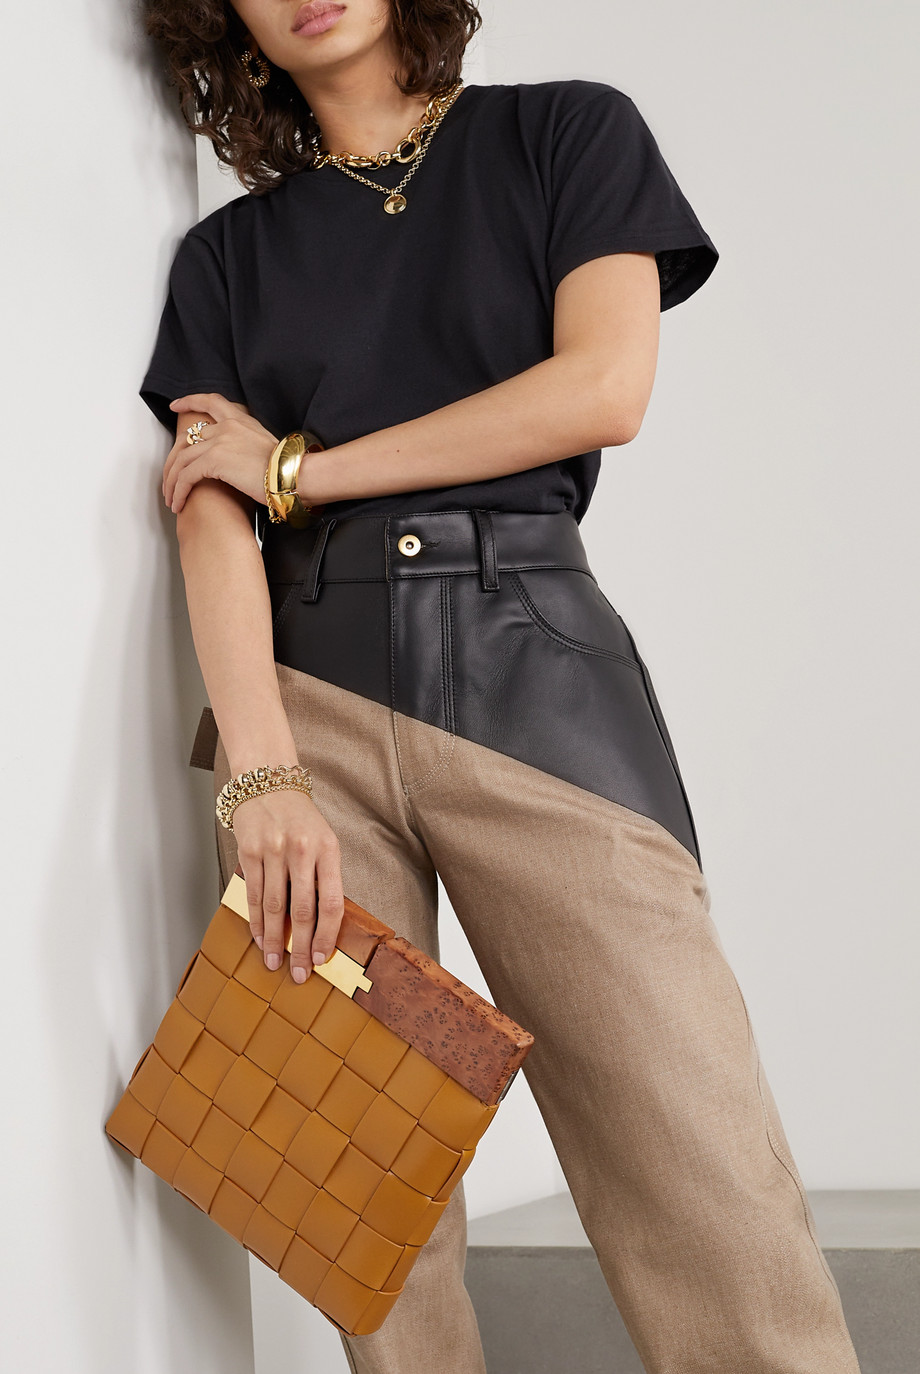 Bottega Veneta Wood and intrecciato leather clutch